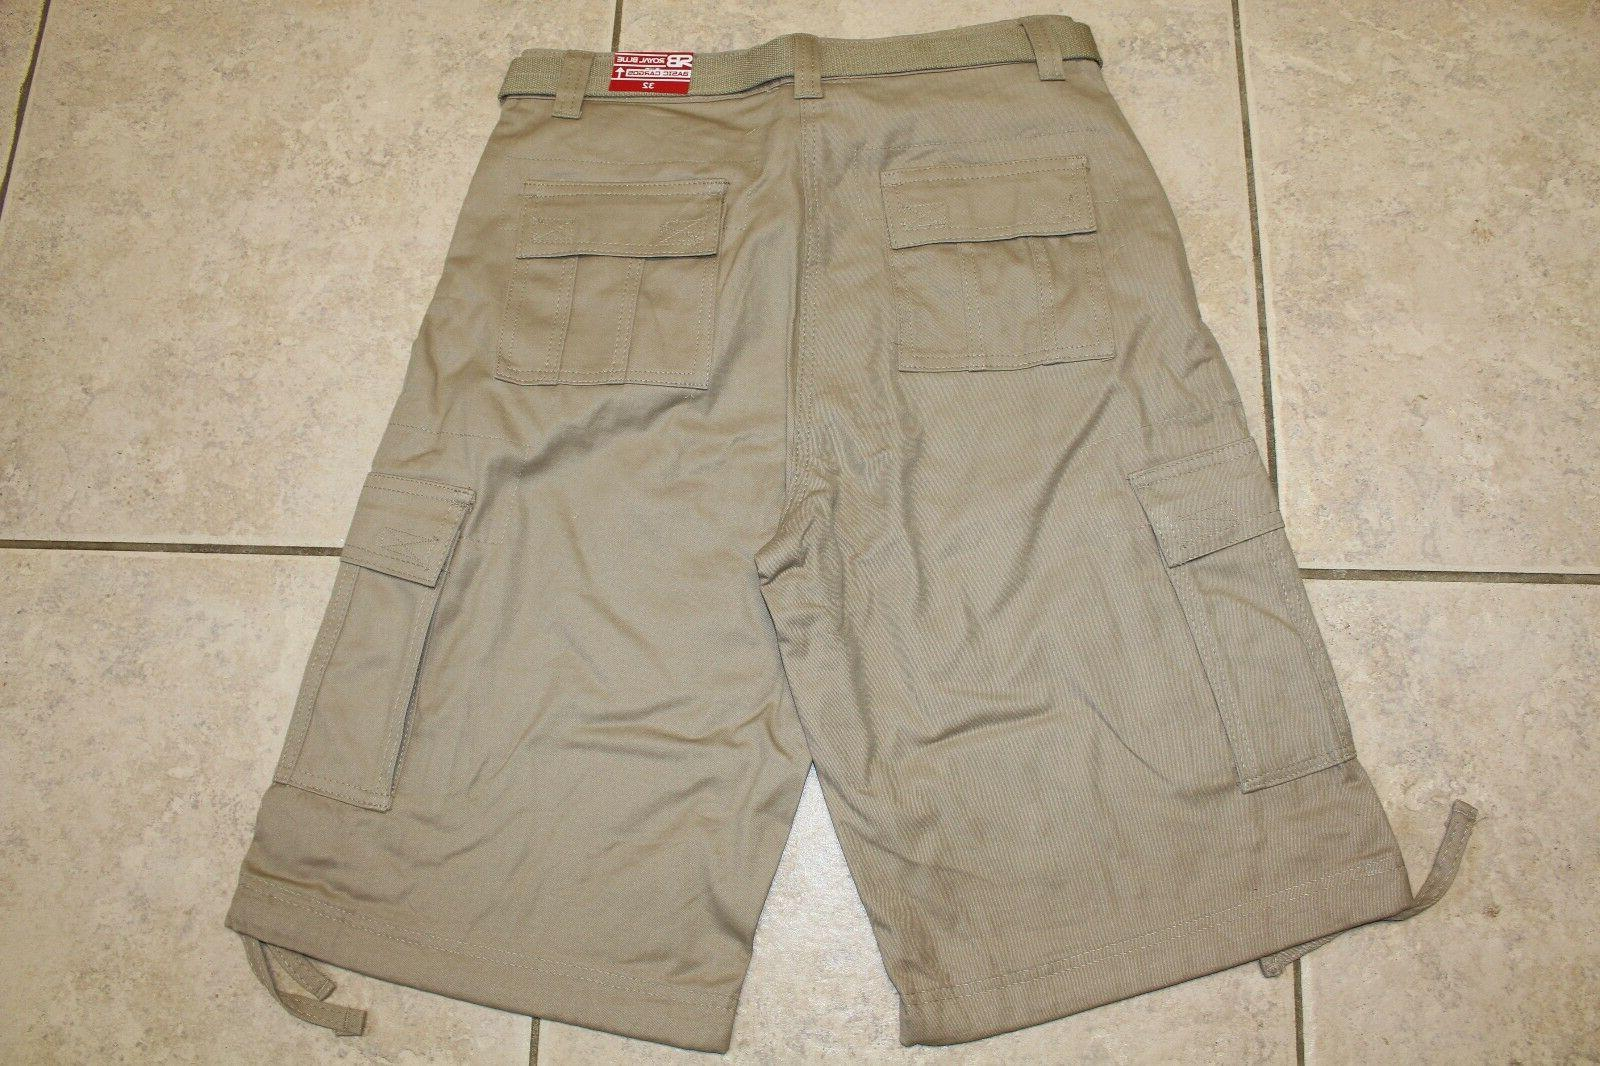 Men's shorts 32 to